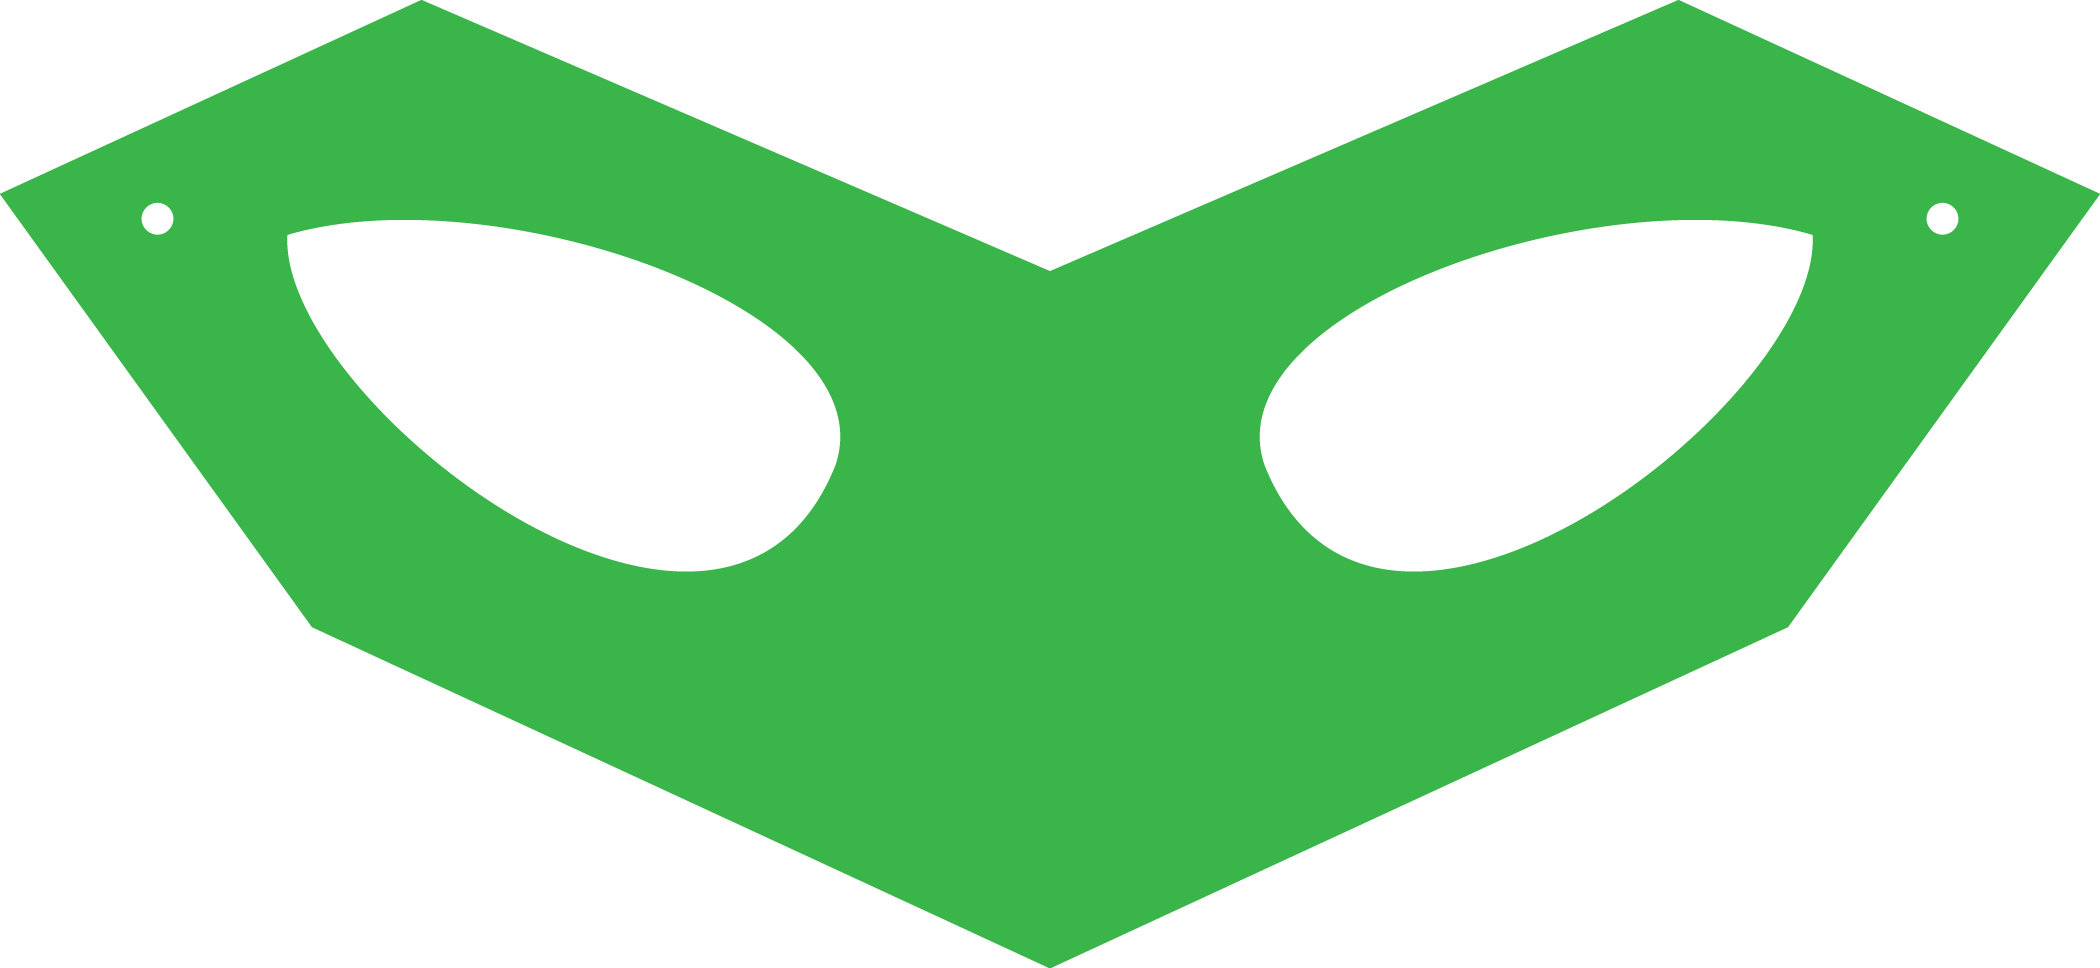 Mask clipart green lantern. Http coscave com project